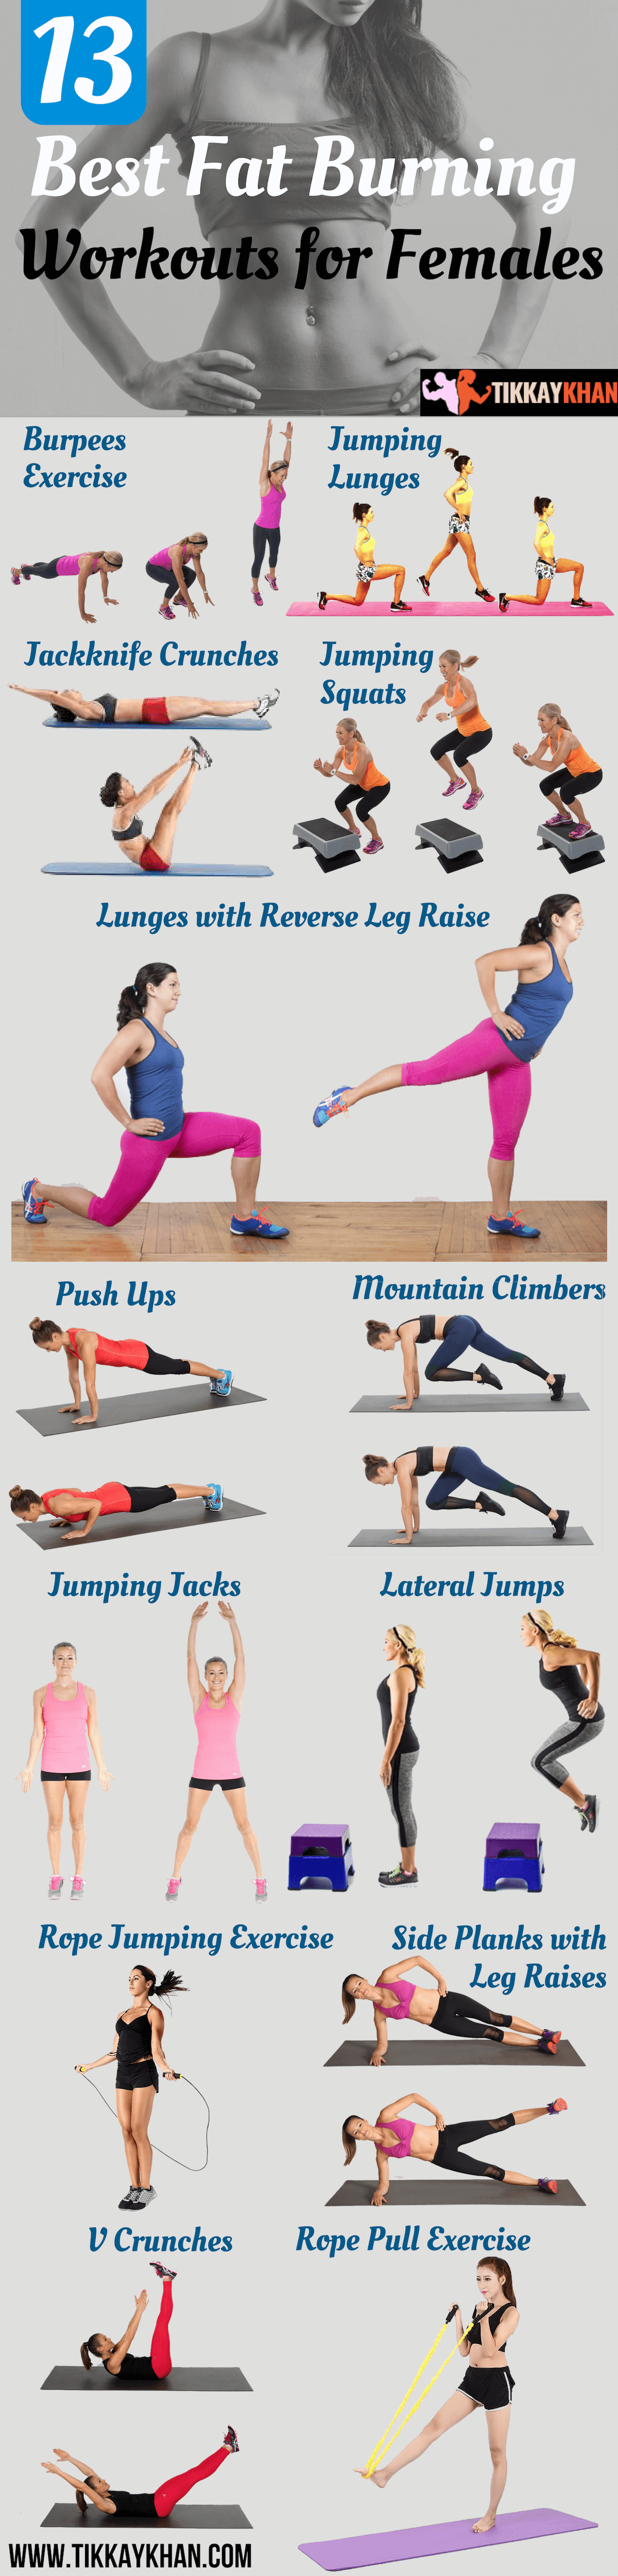 13 Best Fat Burning Workout for Females